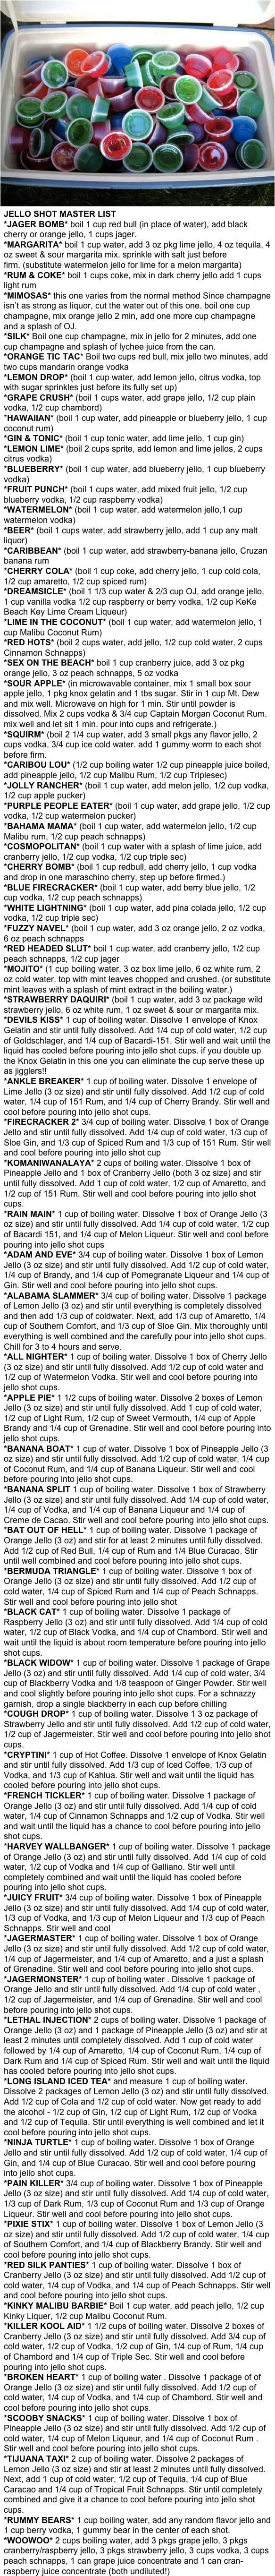 Jello shot recipe list